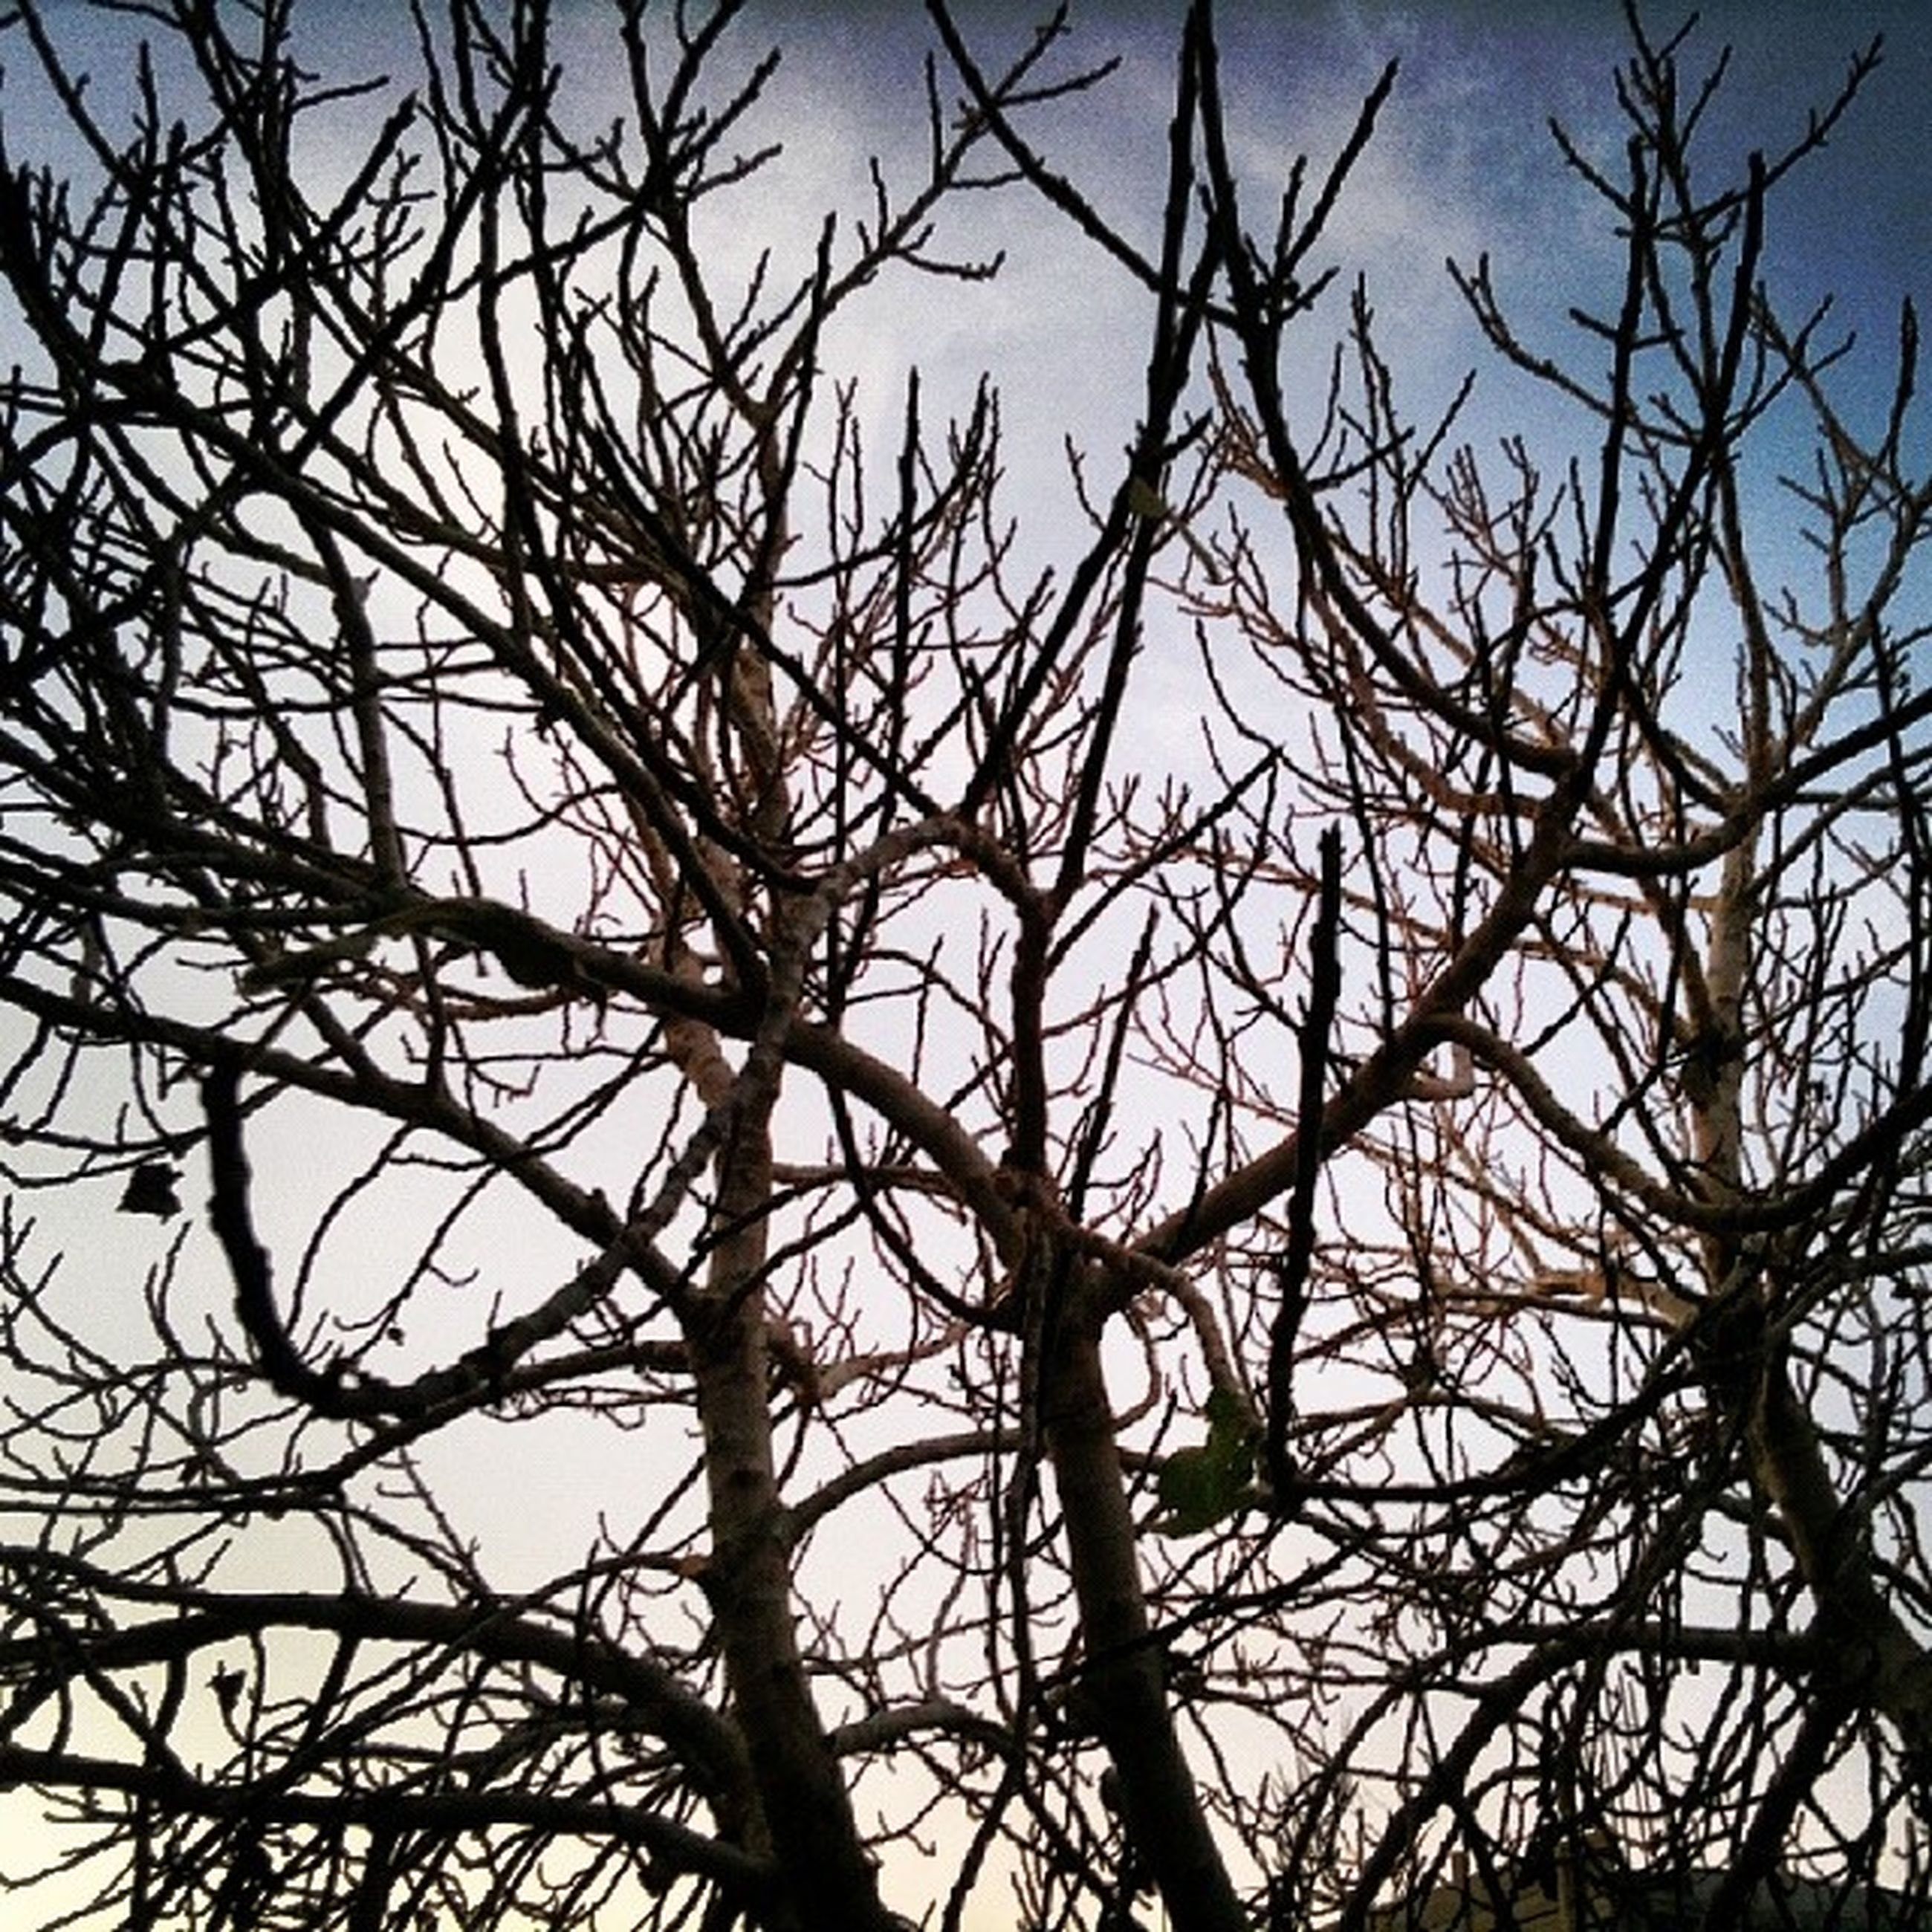 bare tree, branch, low angle view, tree, nature, sky, silhouette, tranquility, clear sky, backgrounds, full frame, beauty in nature, outdoors, no people, day, growth, dried plant, dead plant, scenics, close-up